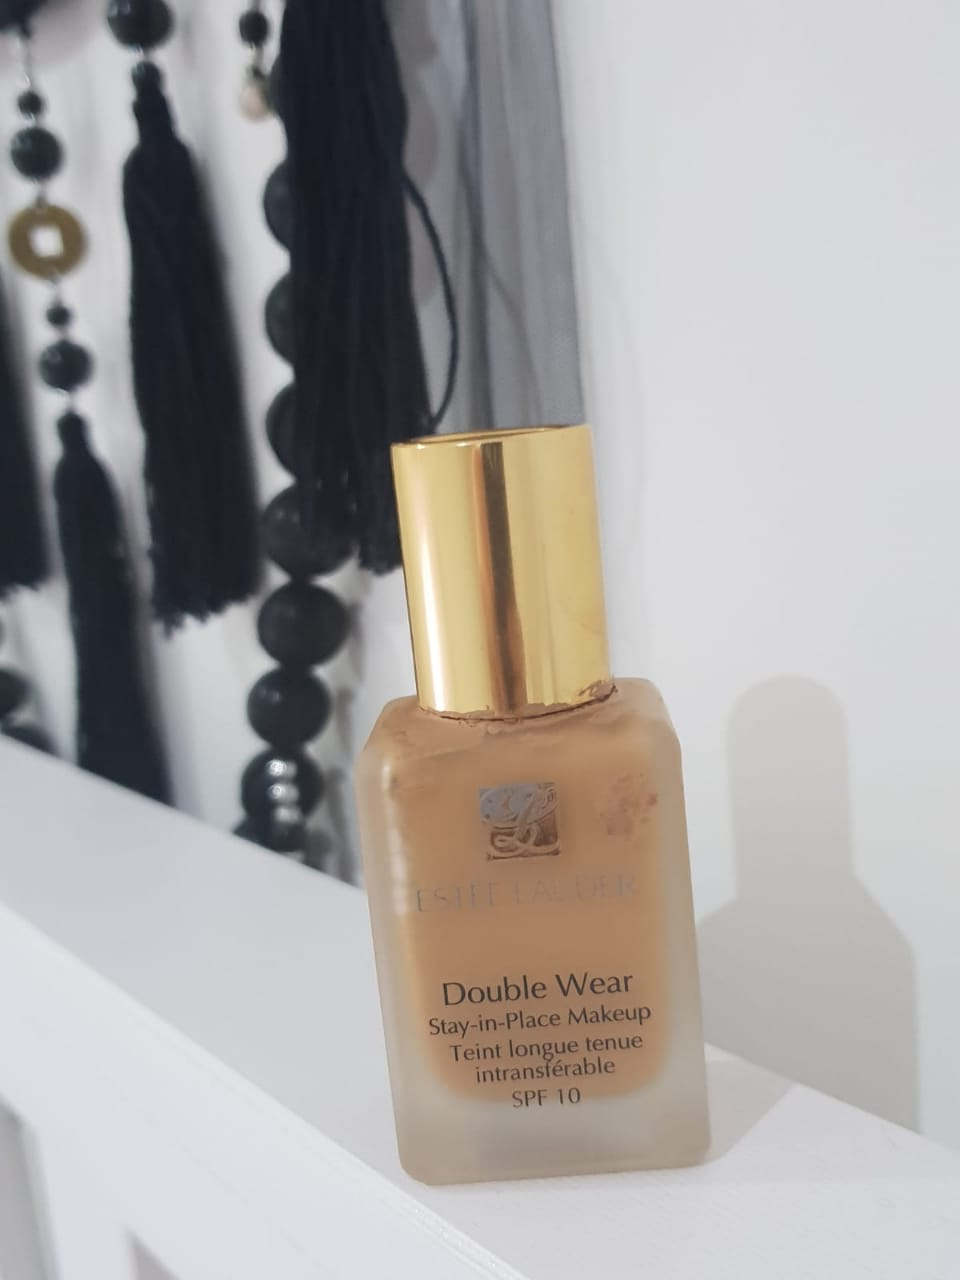 Estee Lauder Double Wear Nude Water Fresh Makeup Foundation SPF 30-Awesome foundation-By poonam_kakkar